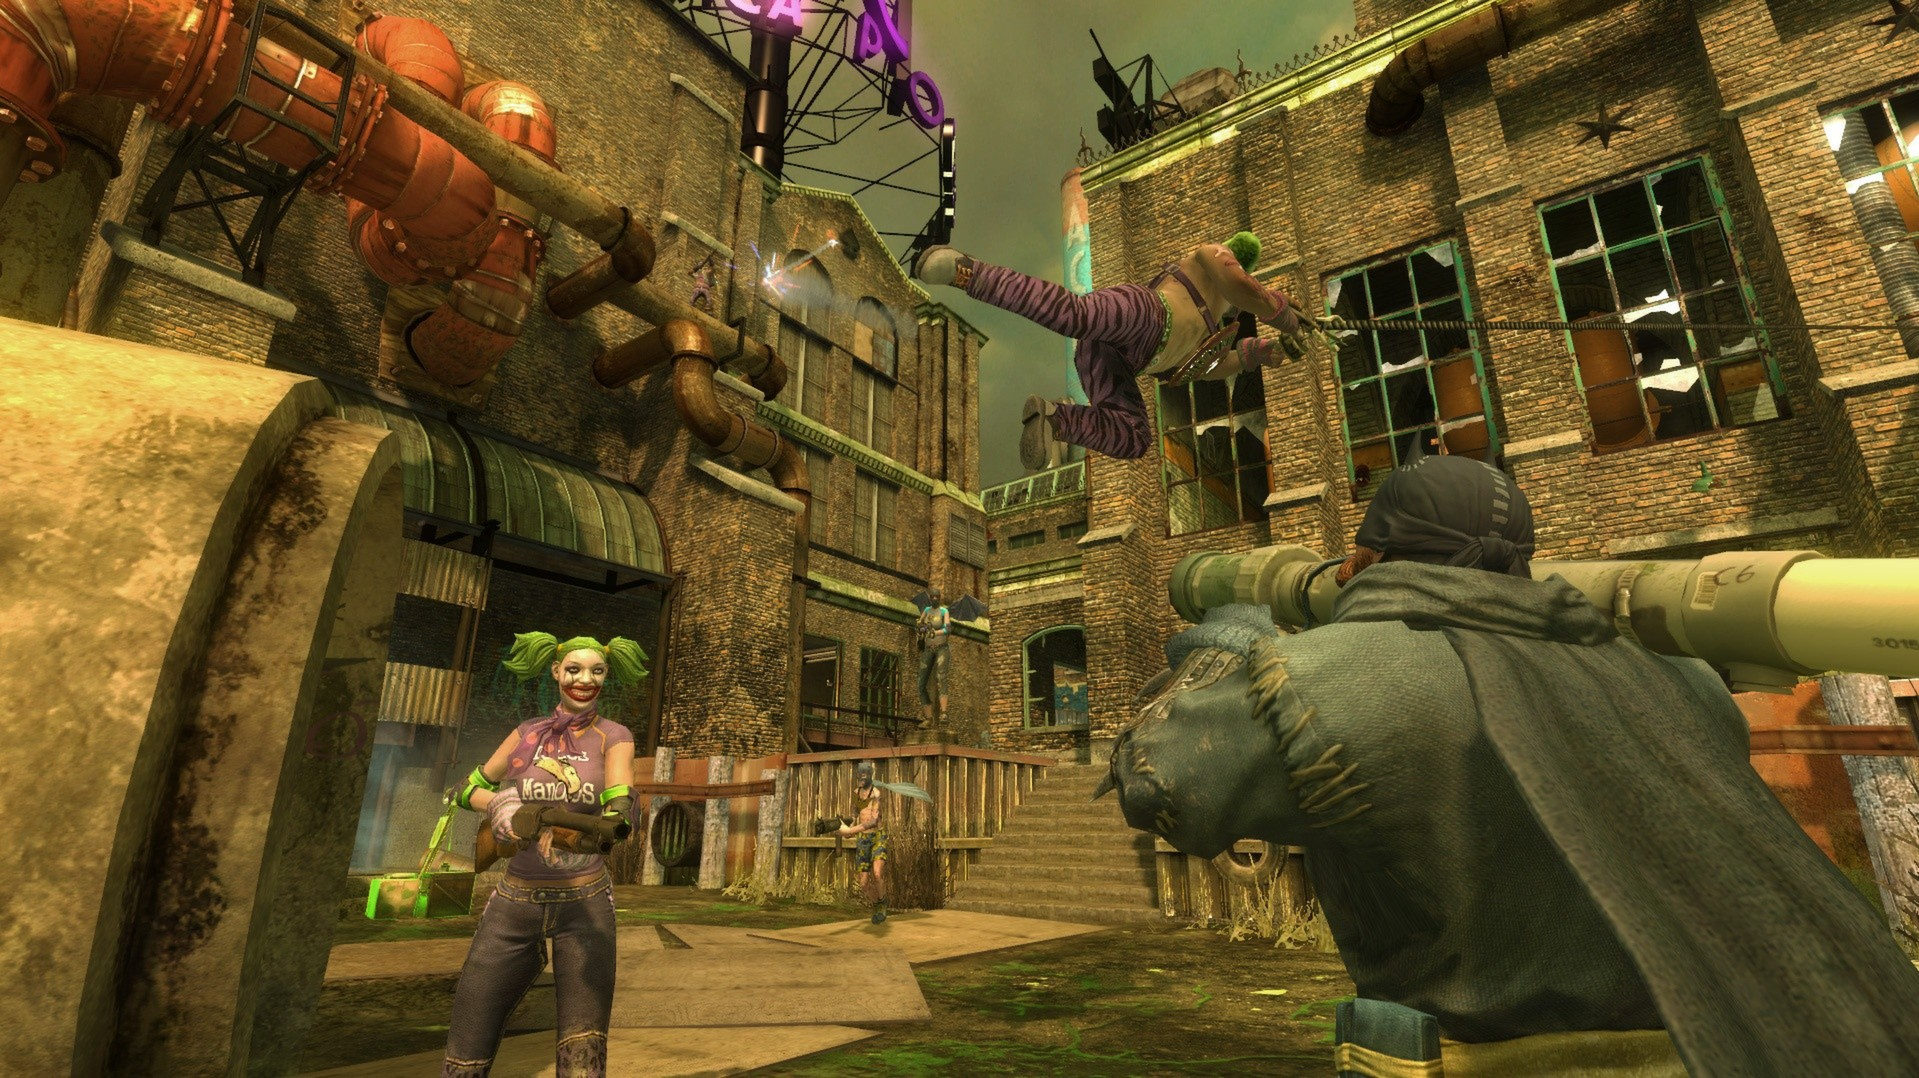 Gotham City Impostors Gameplay Screenshot 1